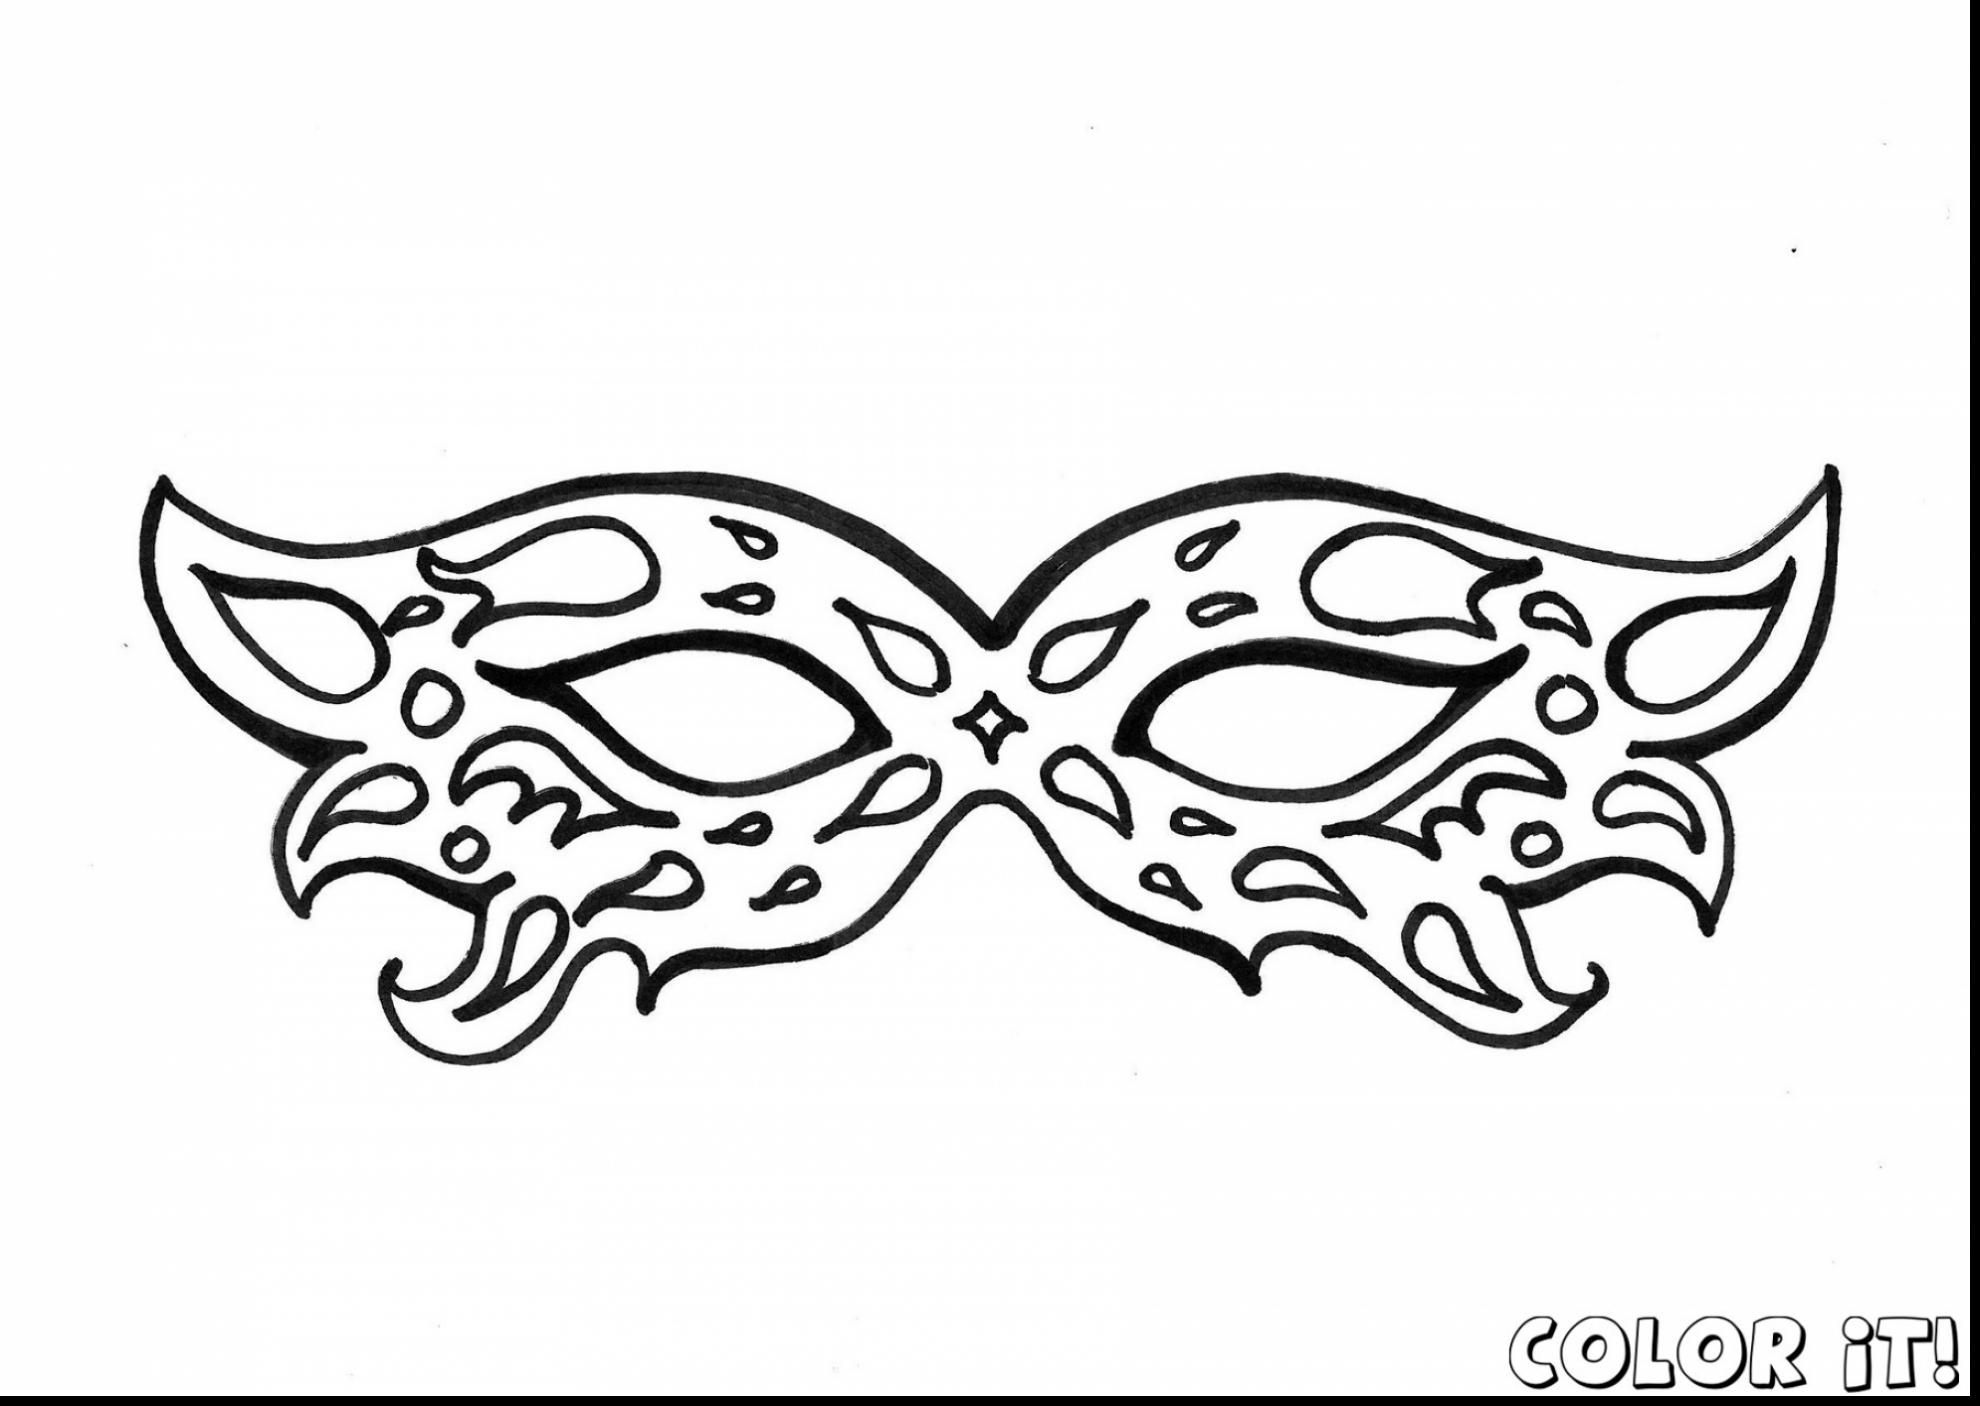 Animal Mask Coloring Pages at GetDrawings.com | Free for ...